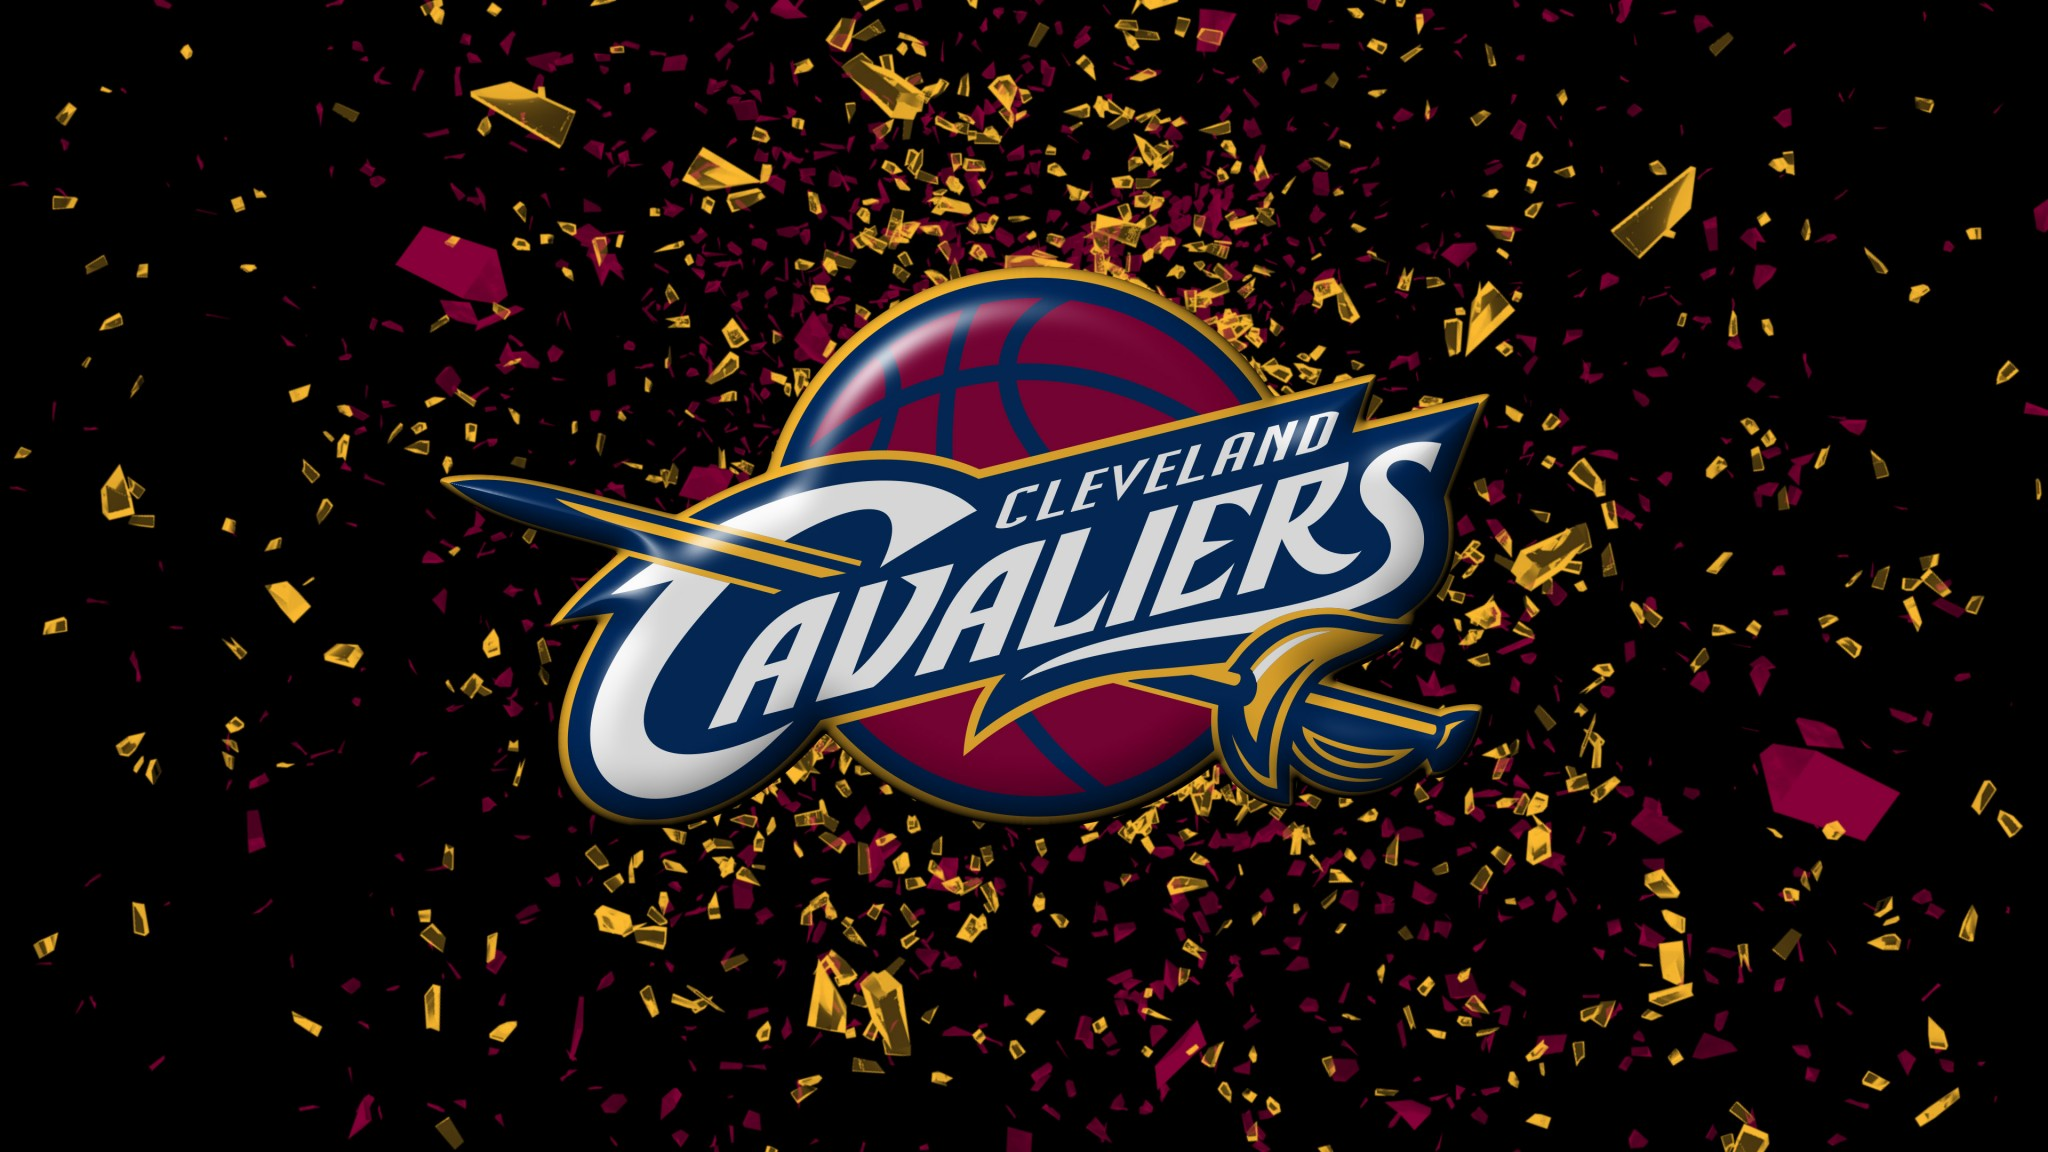 Will cleveland cavaliers see a revival movie tv tech - Cleveland cavaliers wallpaper ...